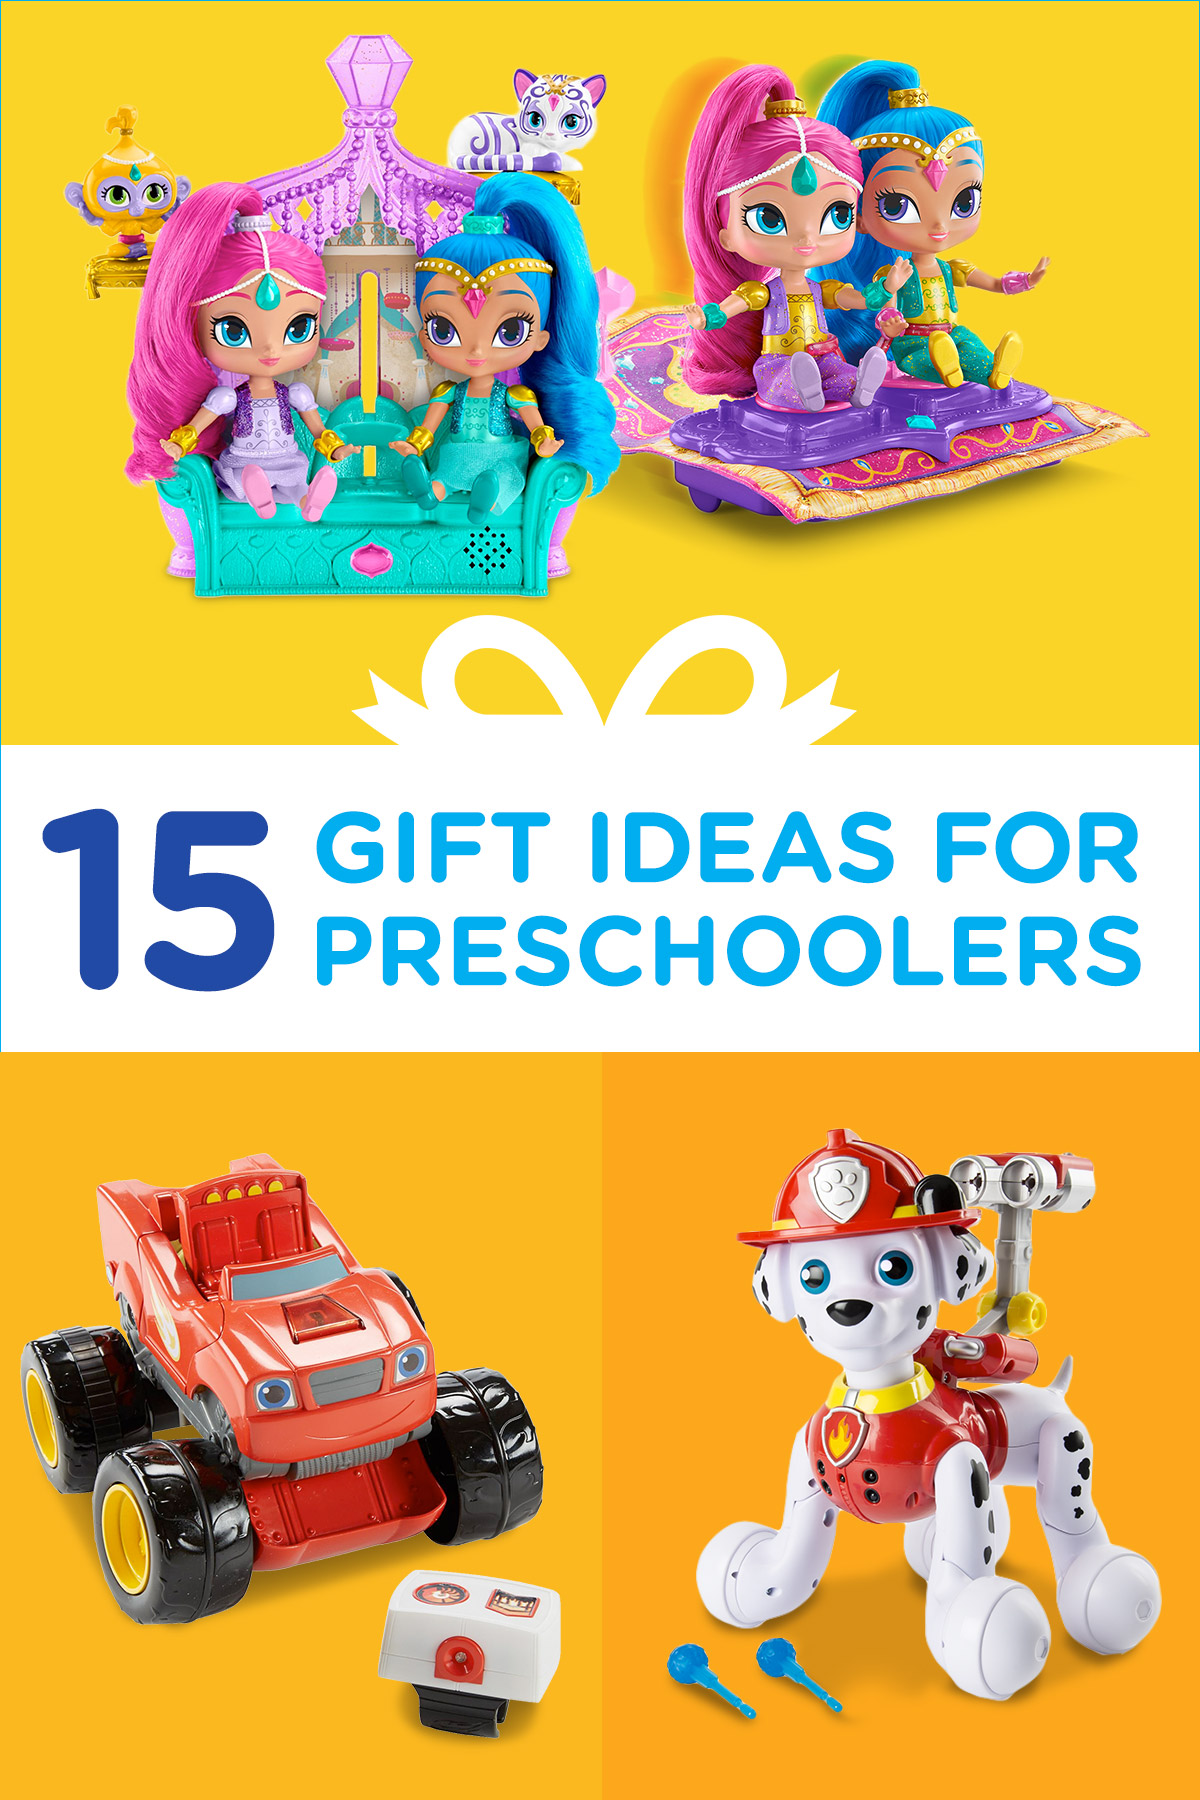 15 Preschool Gift Ideas